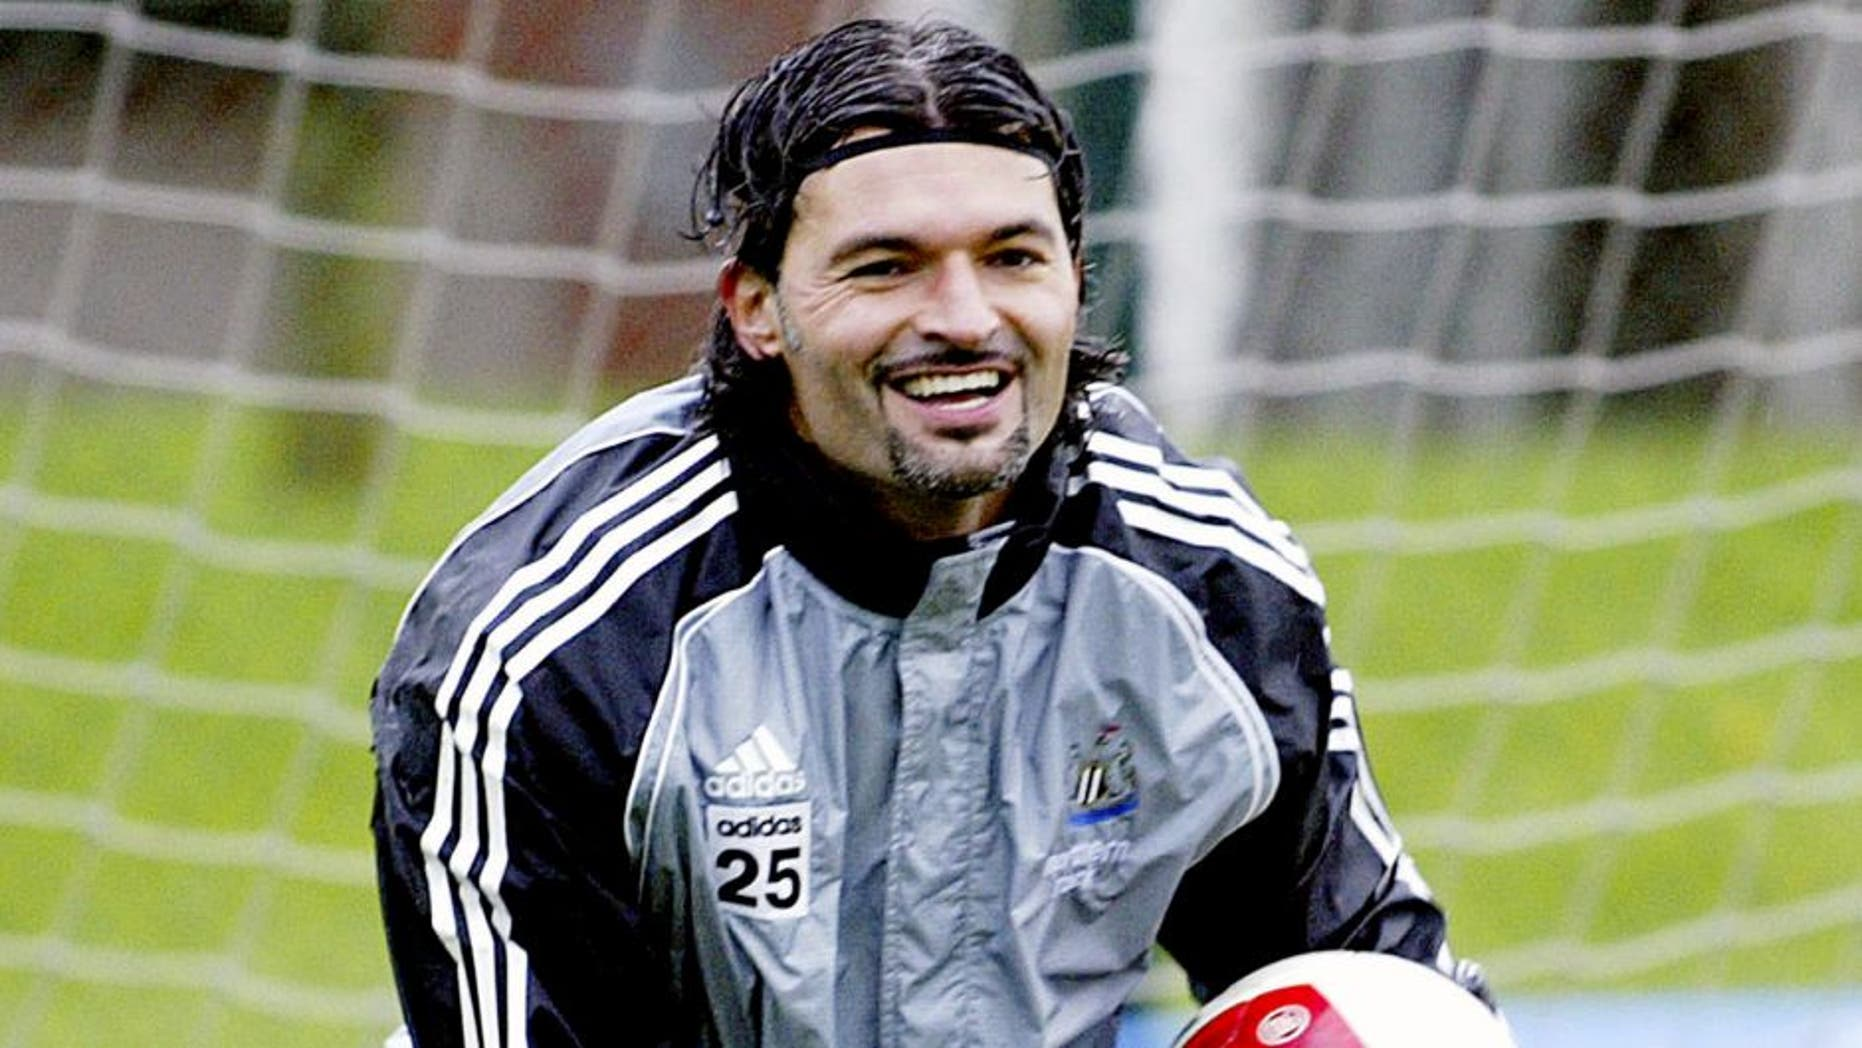 NEWCASTLE-UPON-TYNE, UNITED KINGDOM - OCTOBER 20: Goal Keeper Pavel Srnicek laughs after he makes a save during a training session at the Newcastle United training ground on October 20, 2006 in Benton, Newcastle, England. (Photo by Ian Horrocks/Newcastle Utd via Getty Images)